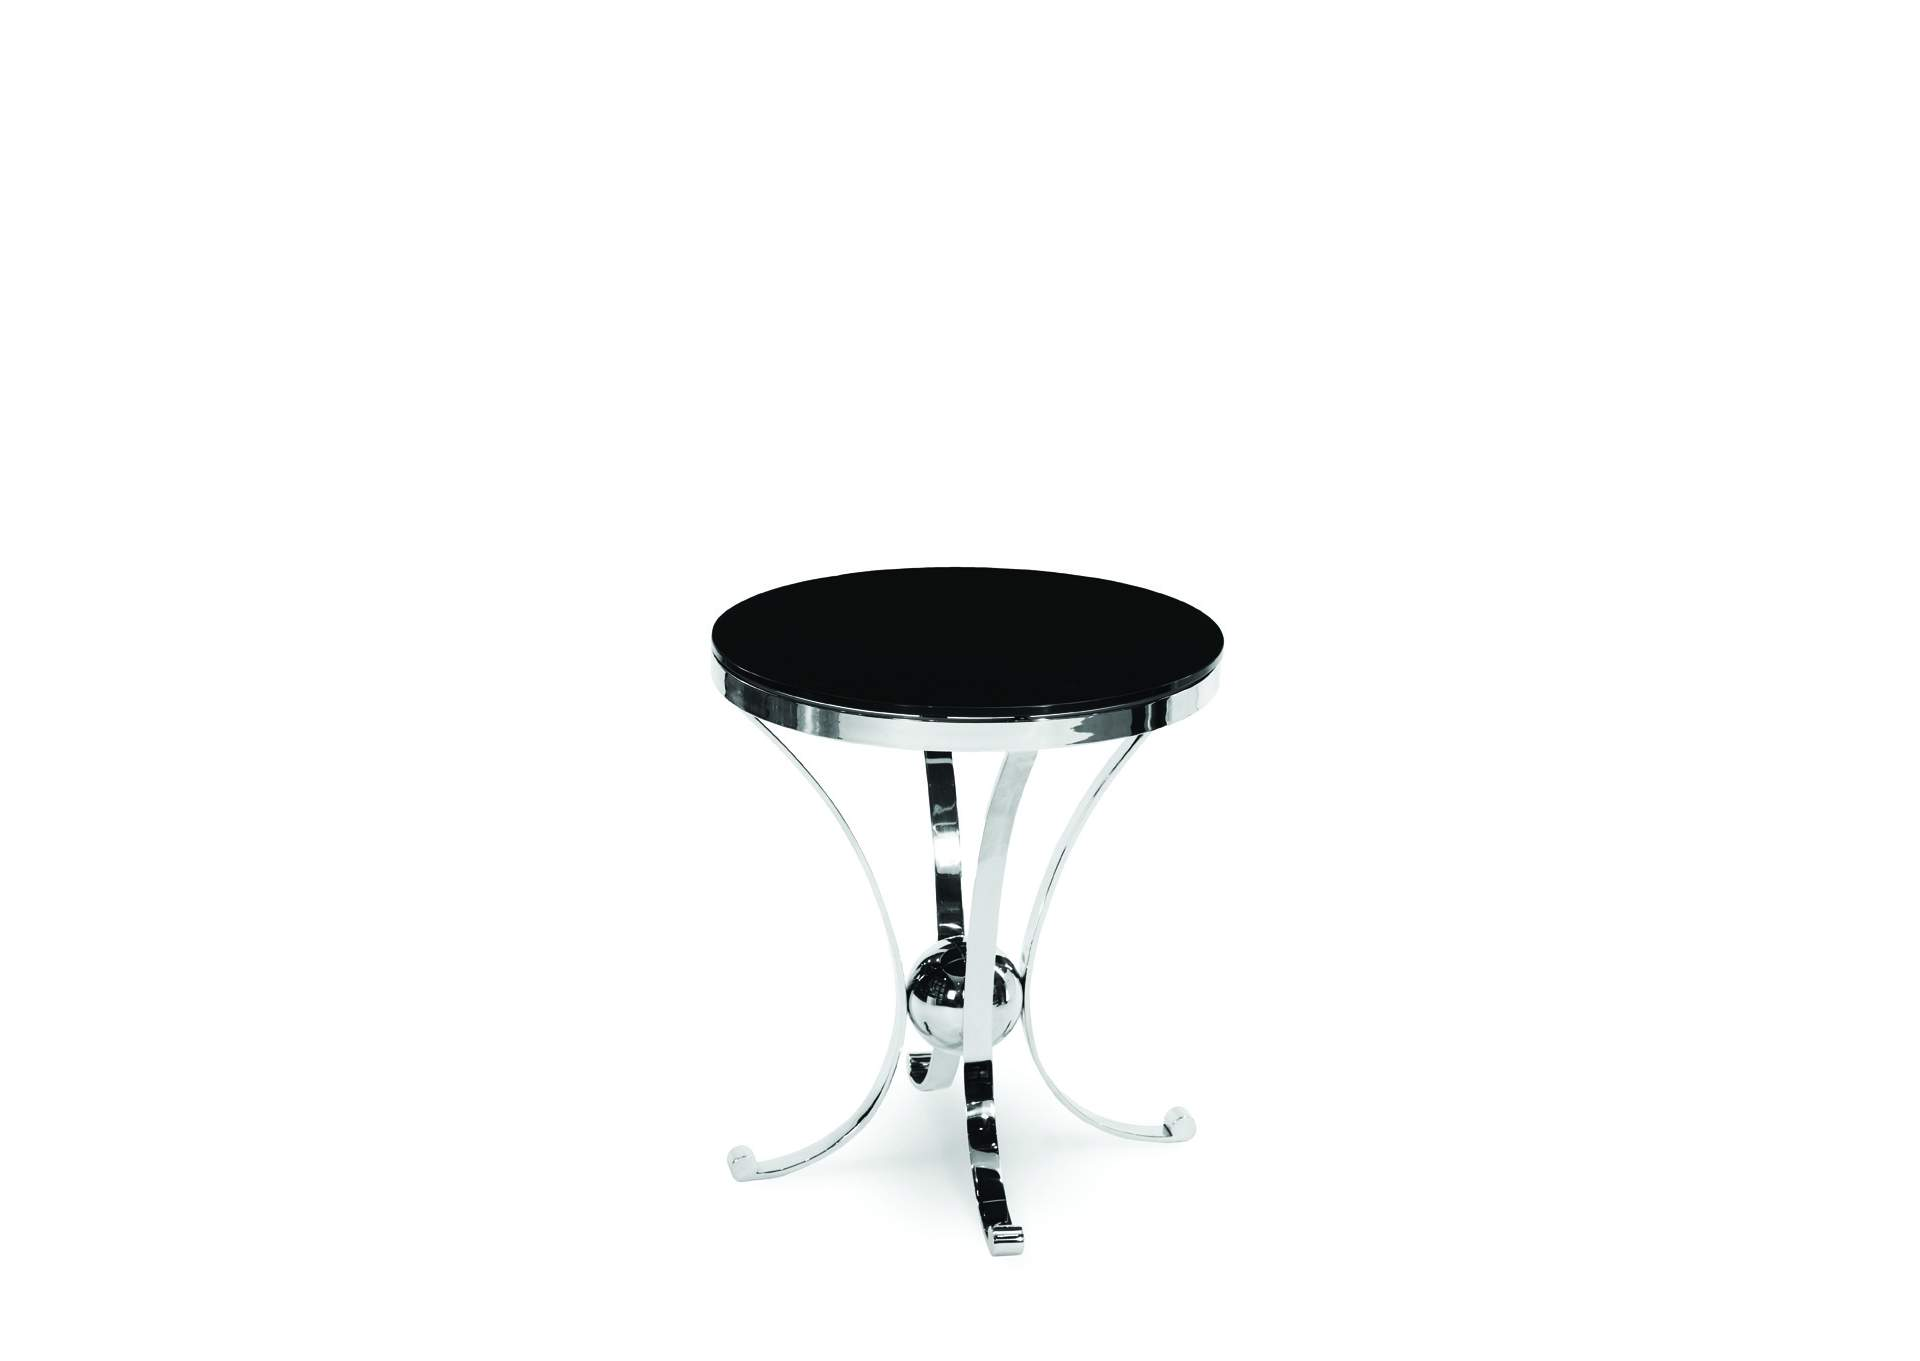 Discoveries Black Accent Round Glass Table,AICO